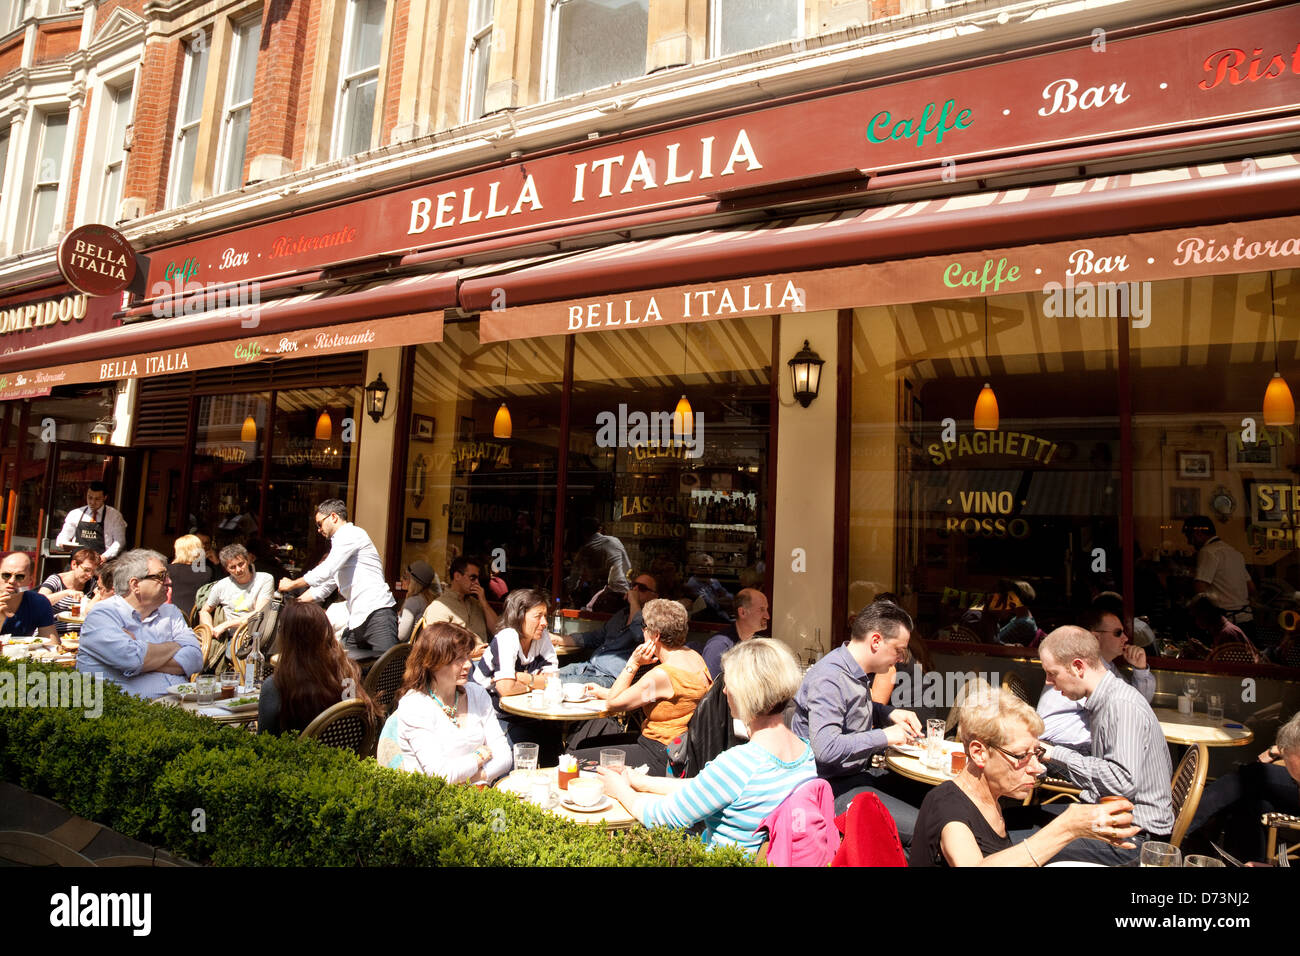 Italian restaurant exterior - Bella Italia Italian Restaurant People Eating Outside Leicester Square Central London Uk